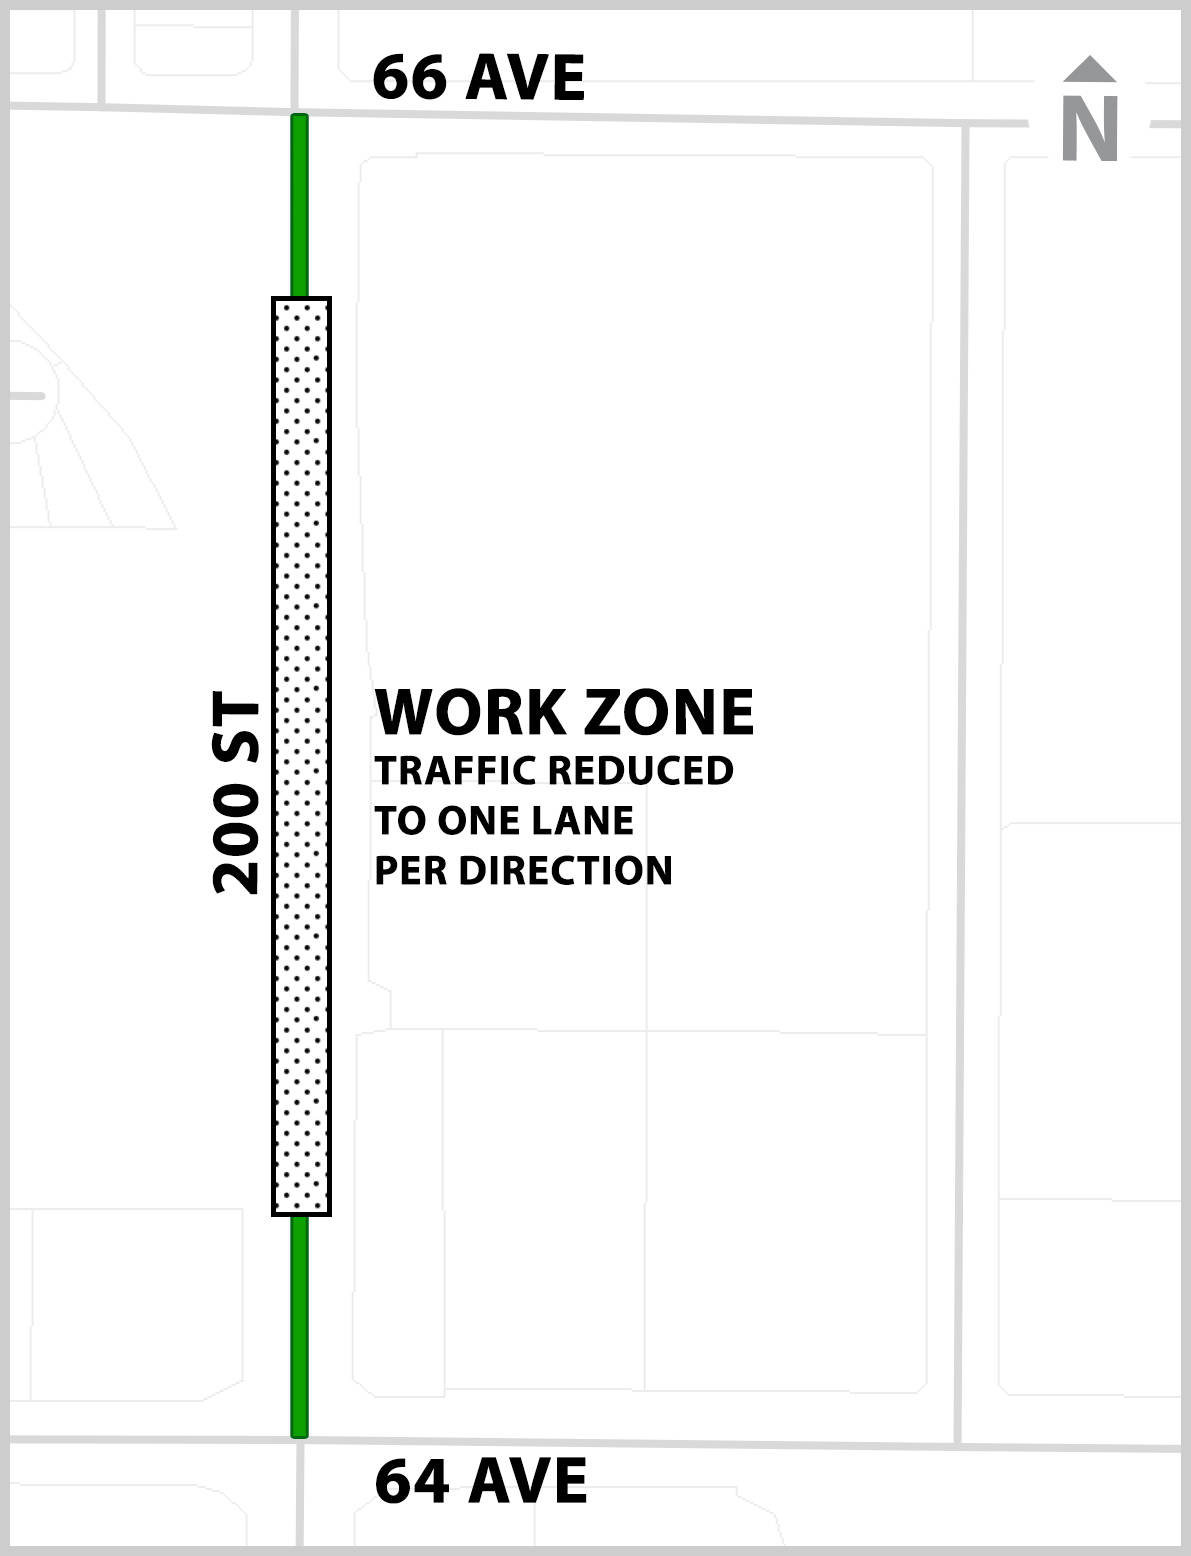 Starting May 19, 2020 north- and southbound lane closures will be in effect on 200 Street between 64 Avenue and 66 Avenue until early July as crews work to upgrade a culvert. (Township of Langley/Special to Langley Advance Times)